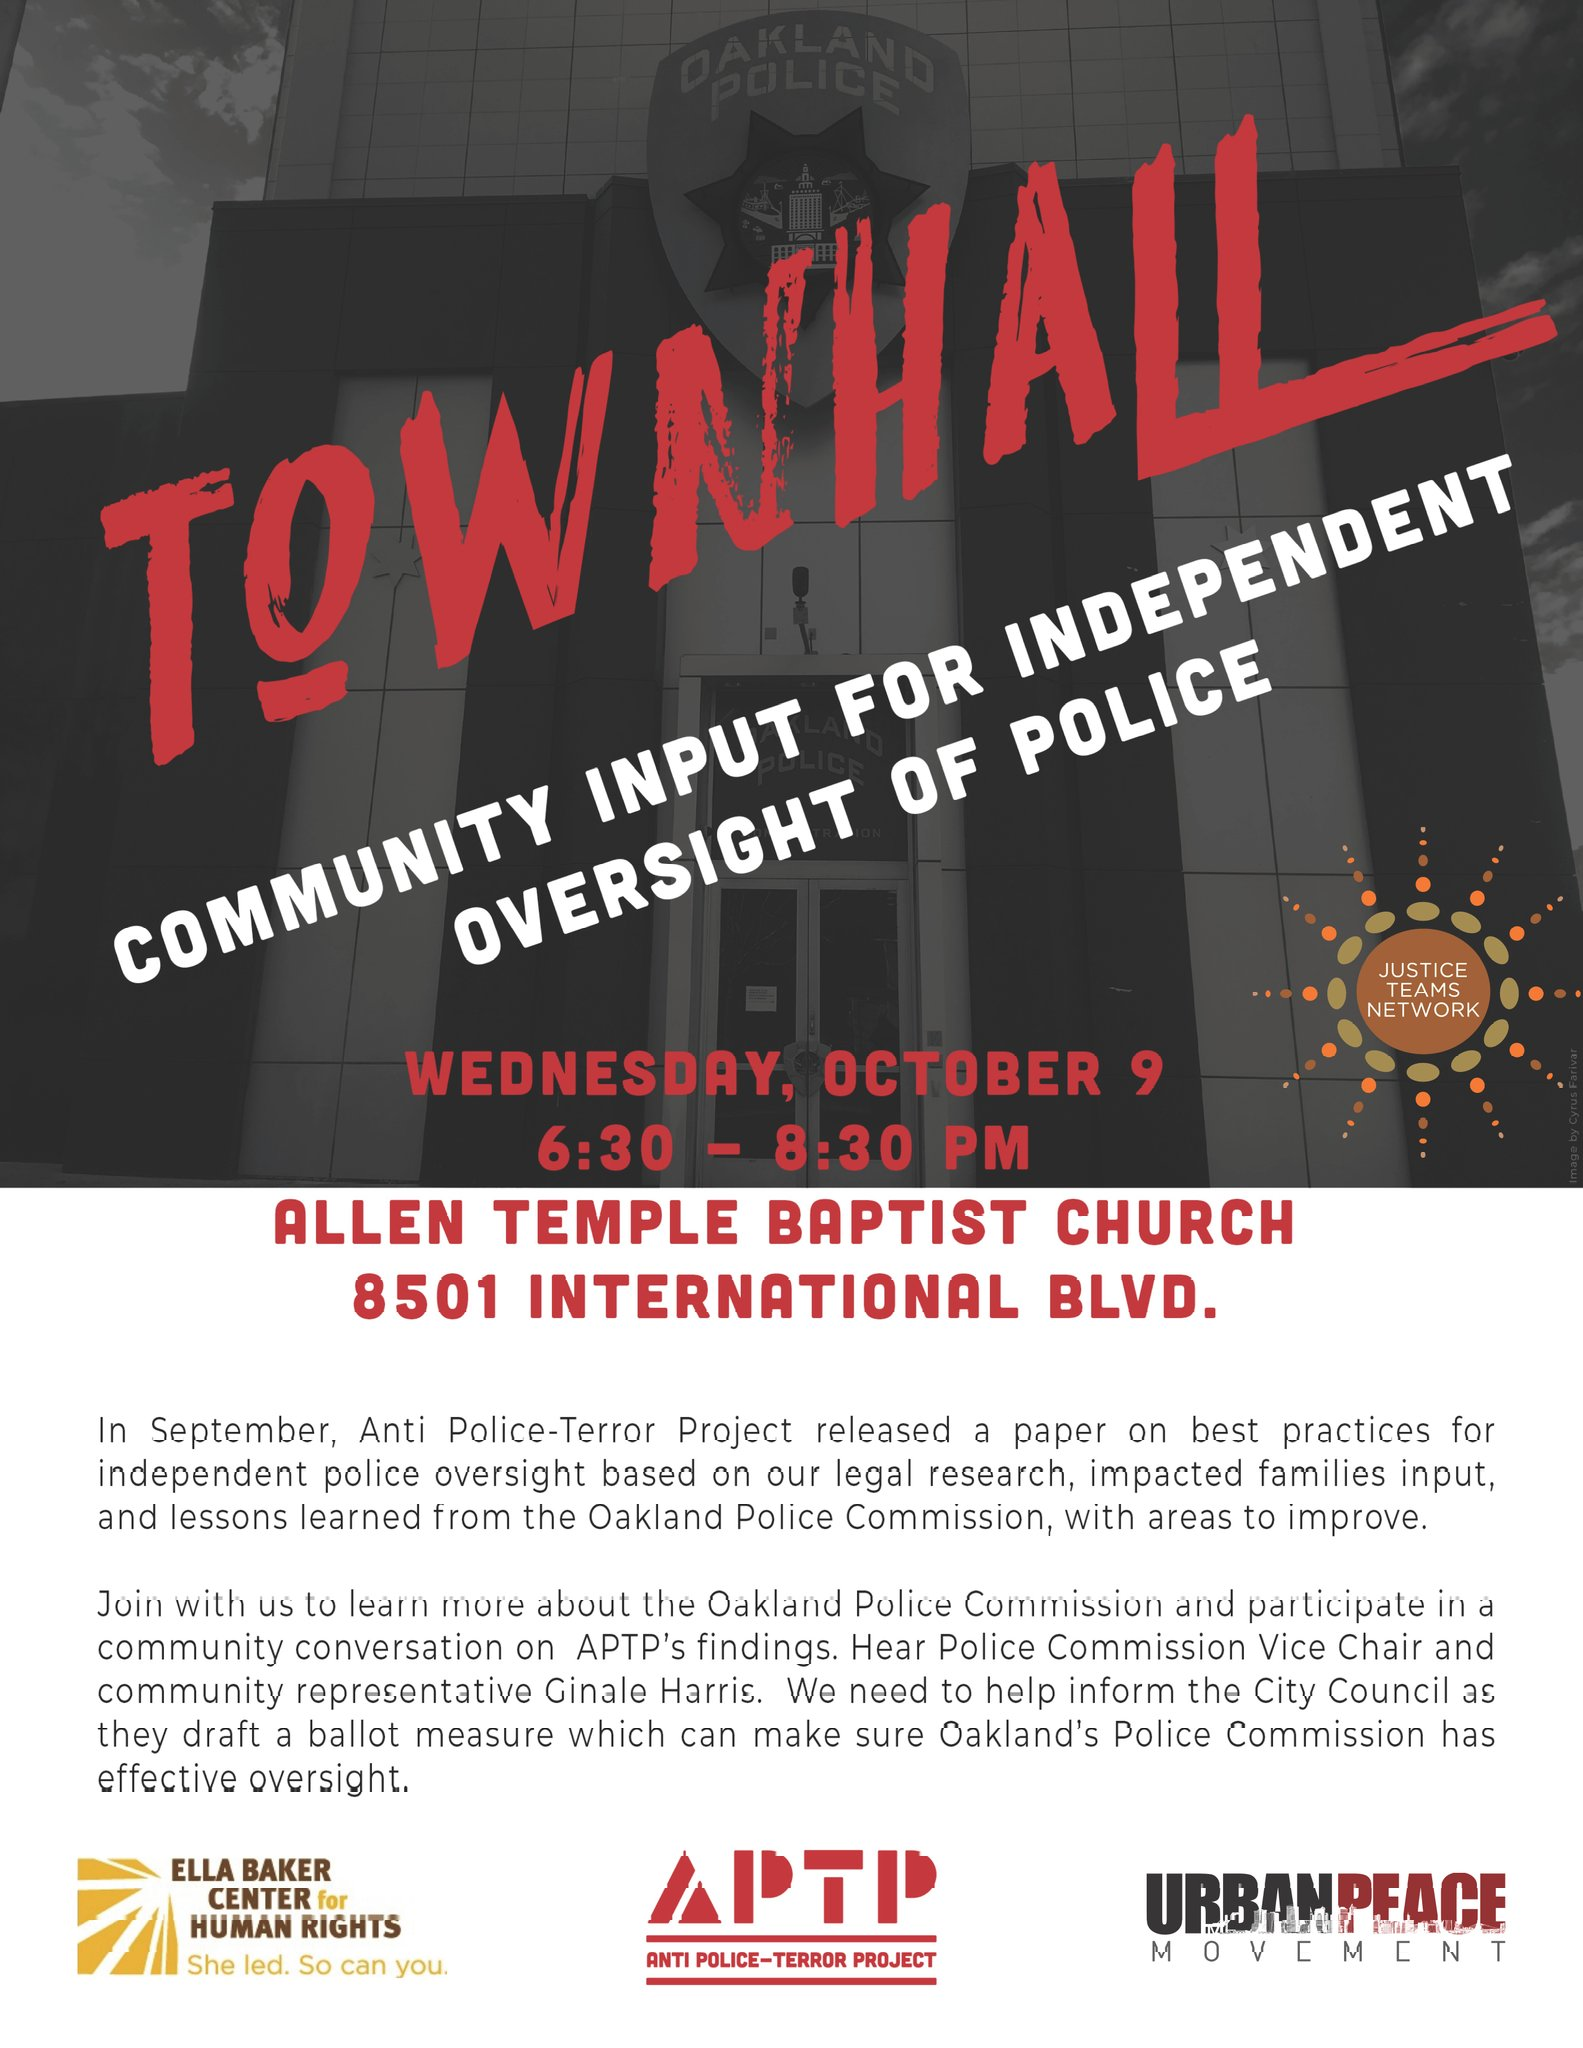 Townhall for Independent Oversight of Police @ EastSide Arts Alliance